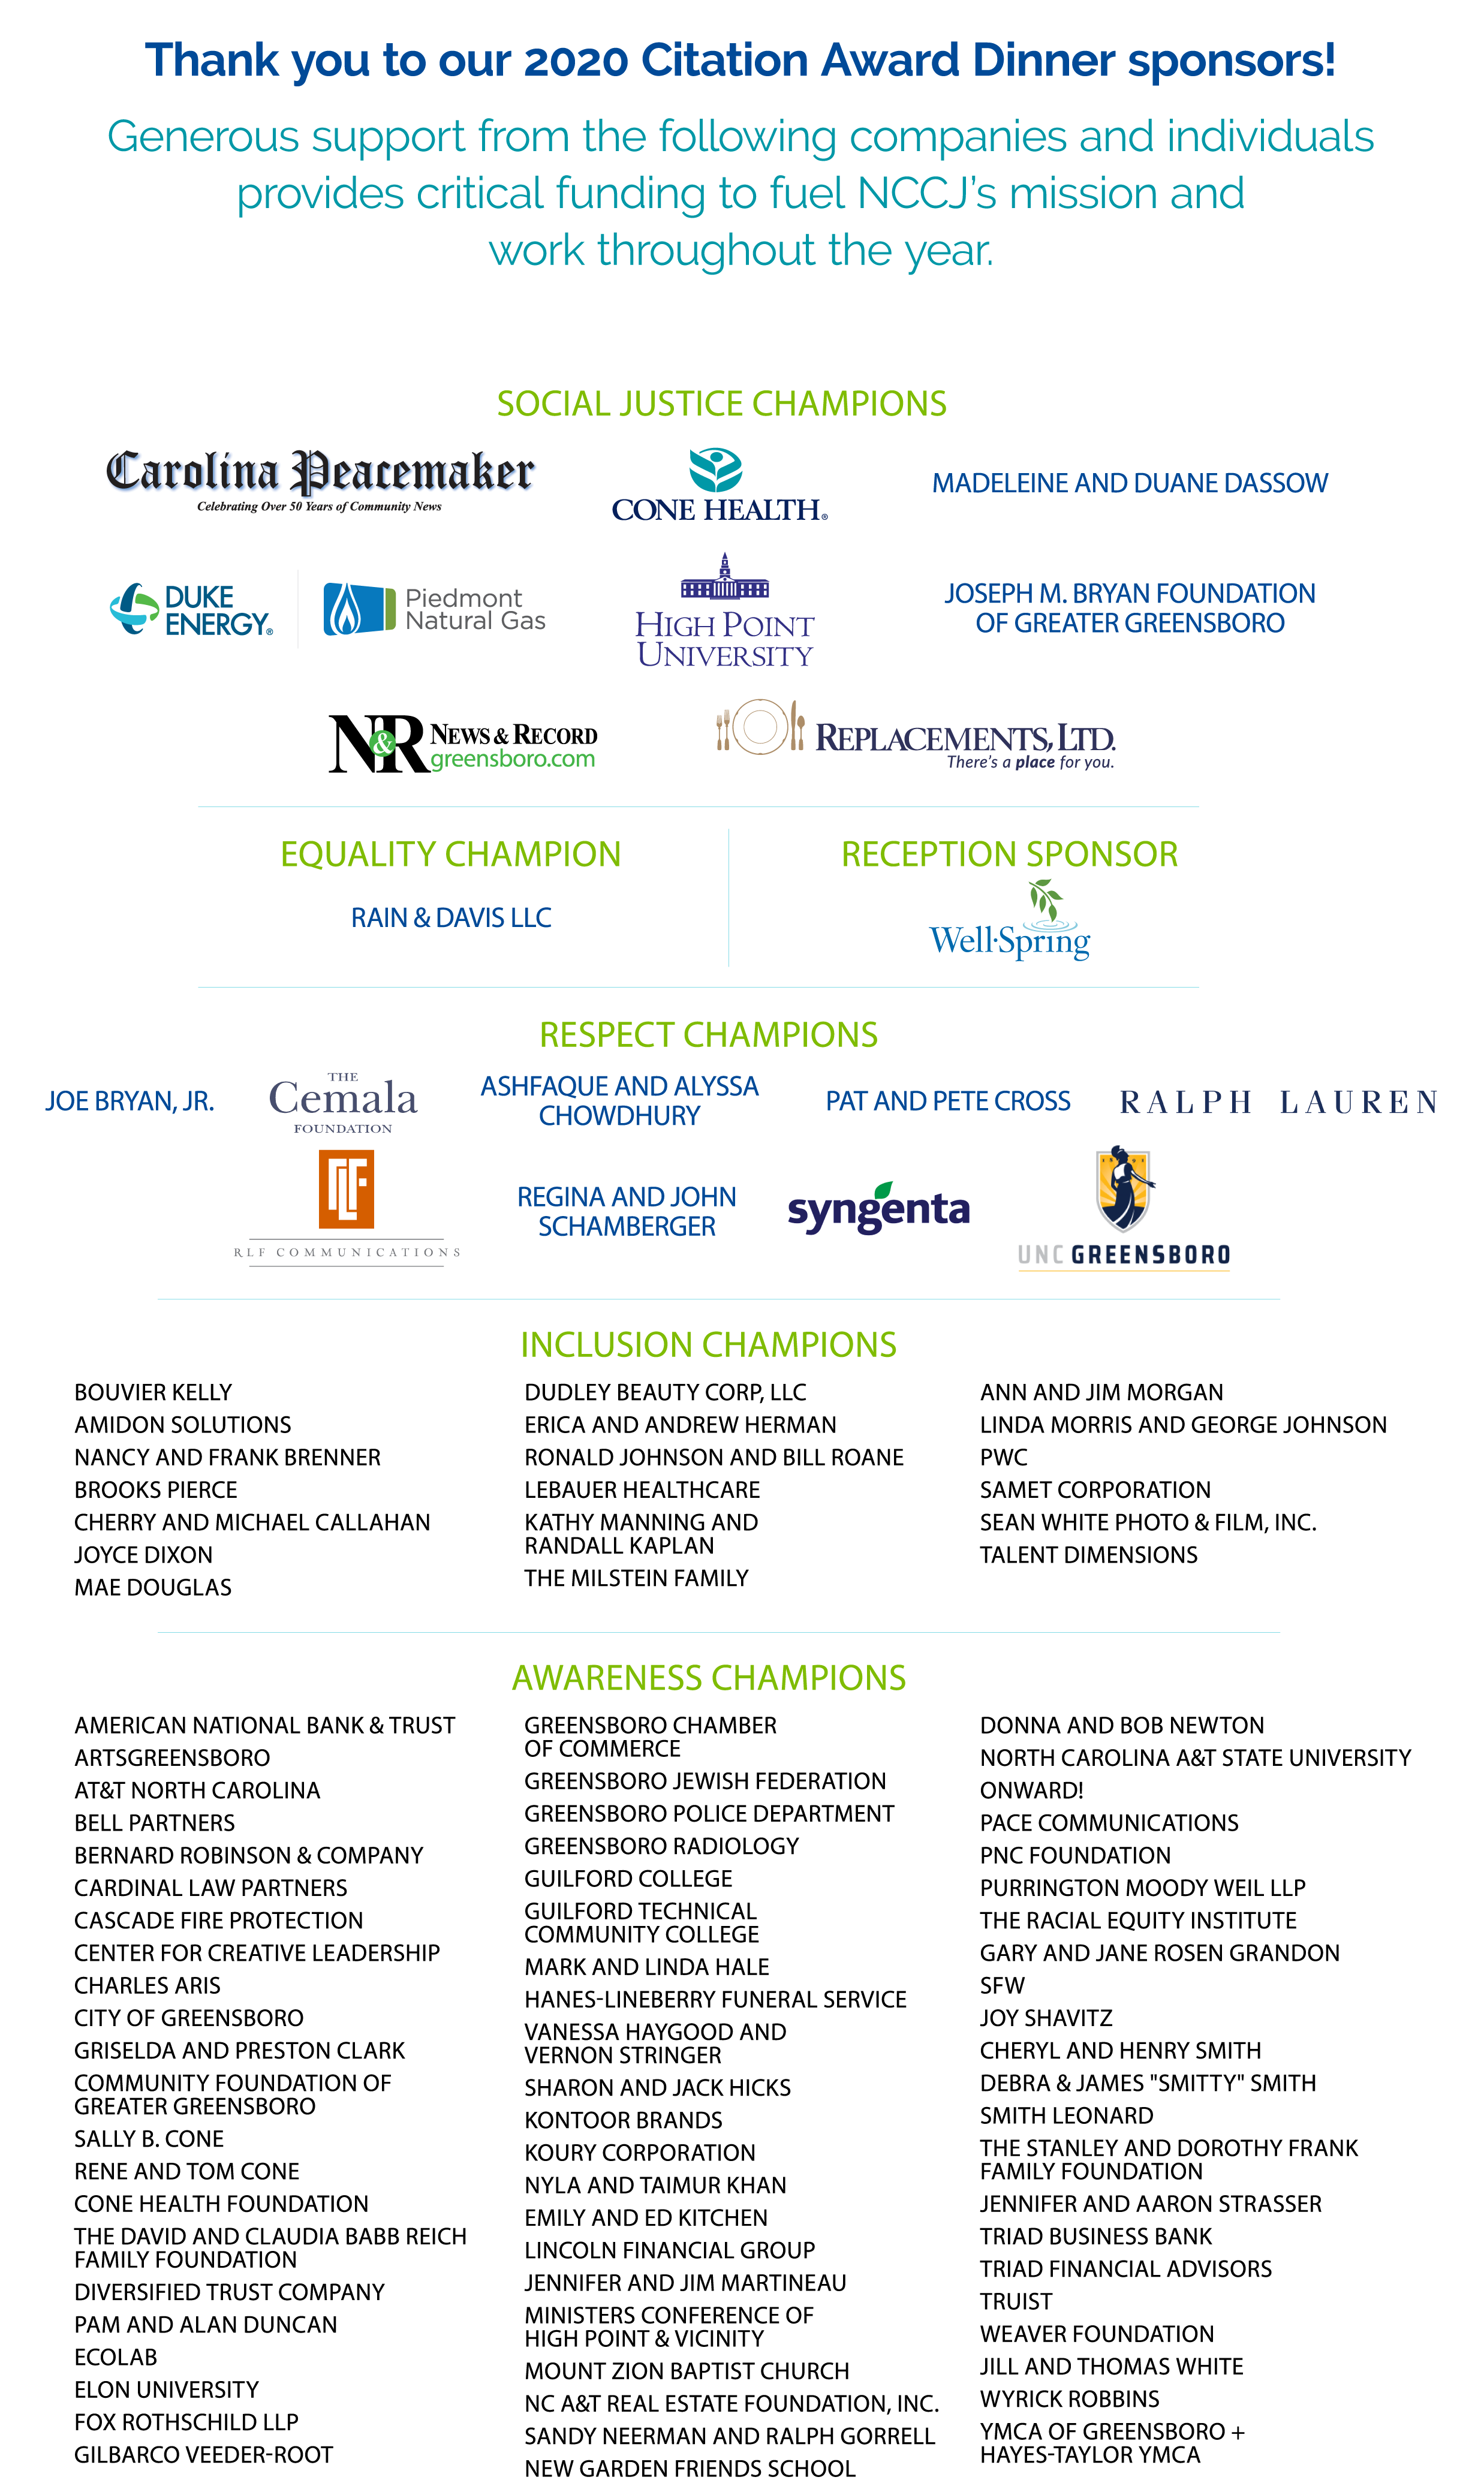 """An Infographic with a white background that says, """"Thank you to our 2020 Citation Award Dinner sponsors!"""""""